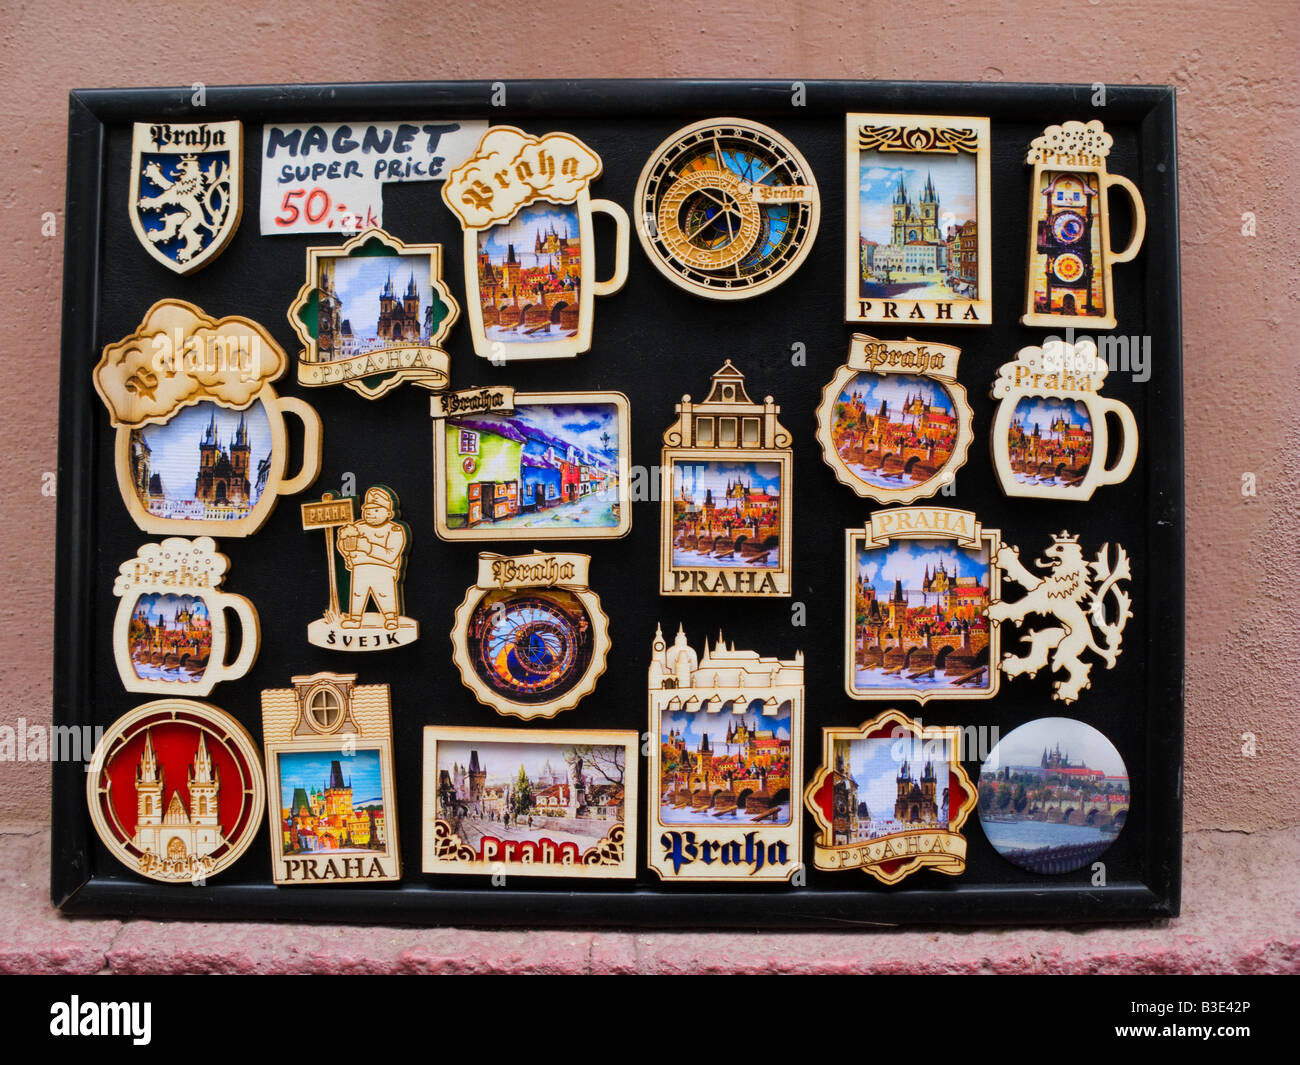 Display of fridge magnets in Prague Czech Republic - Stock Image